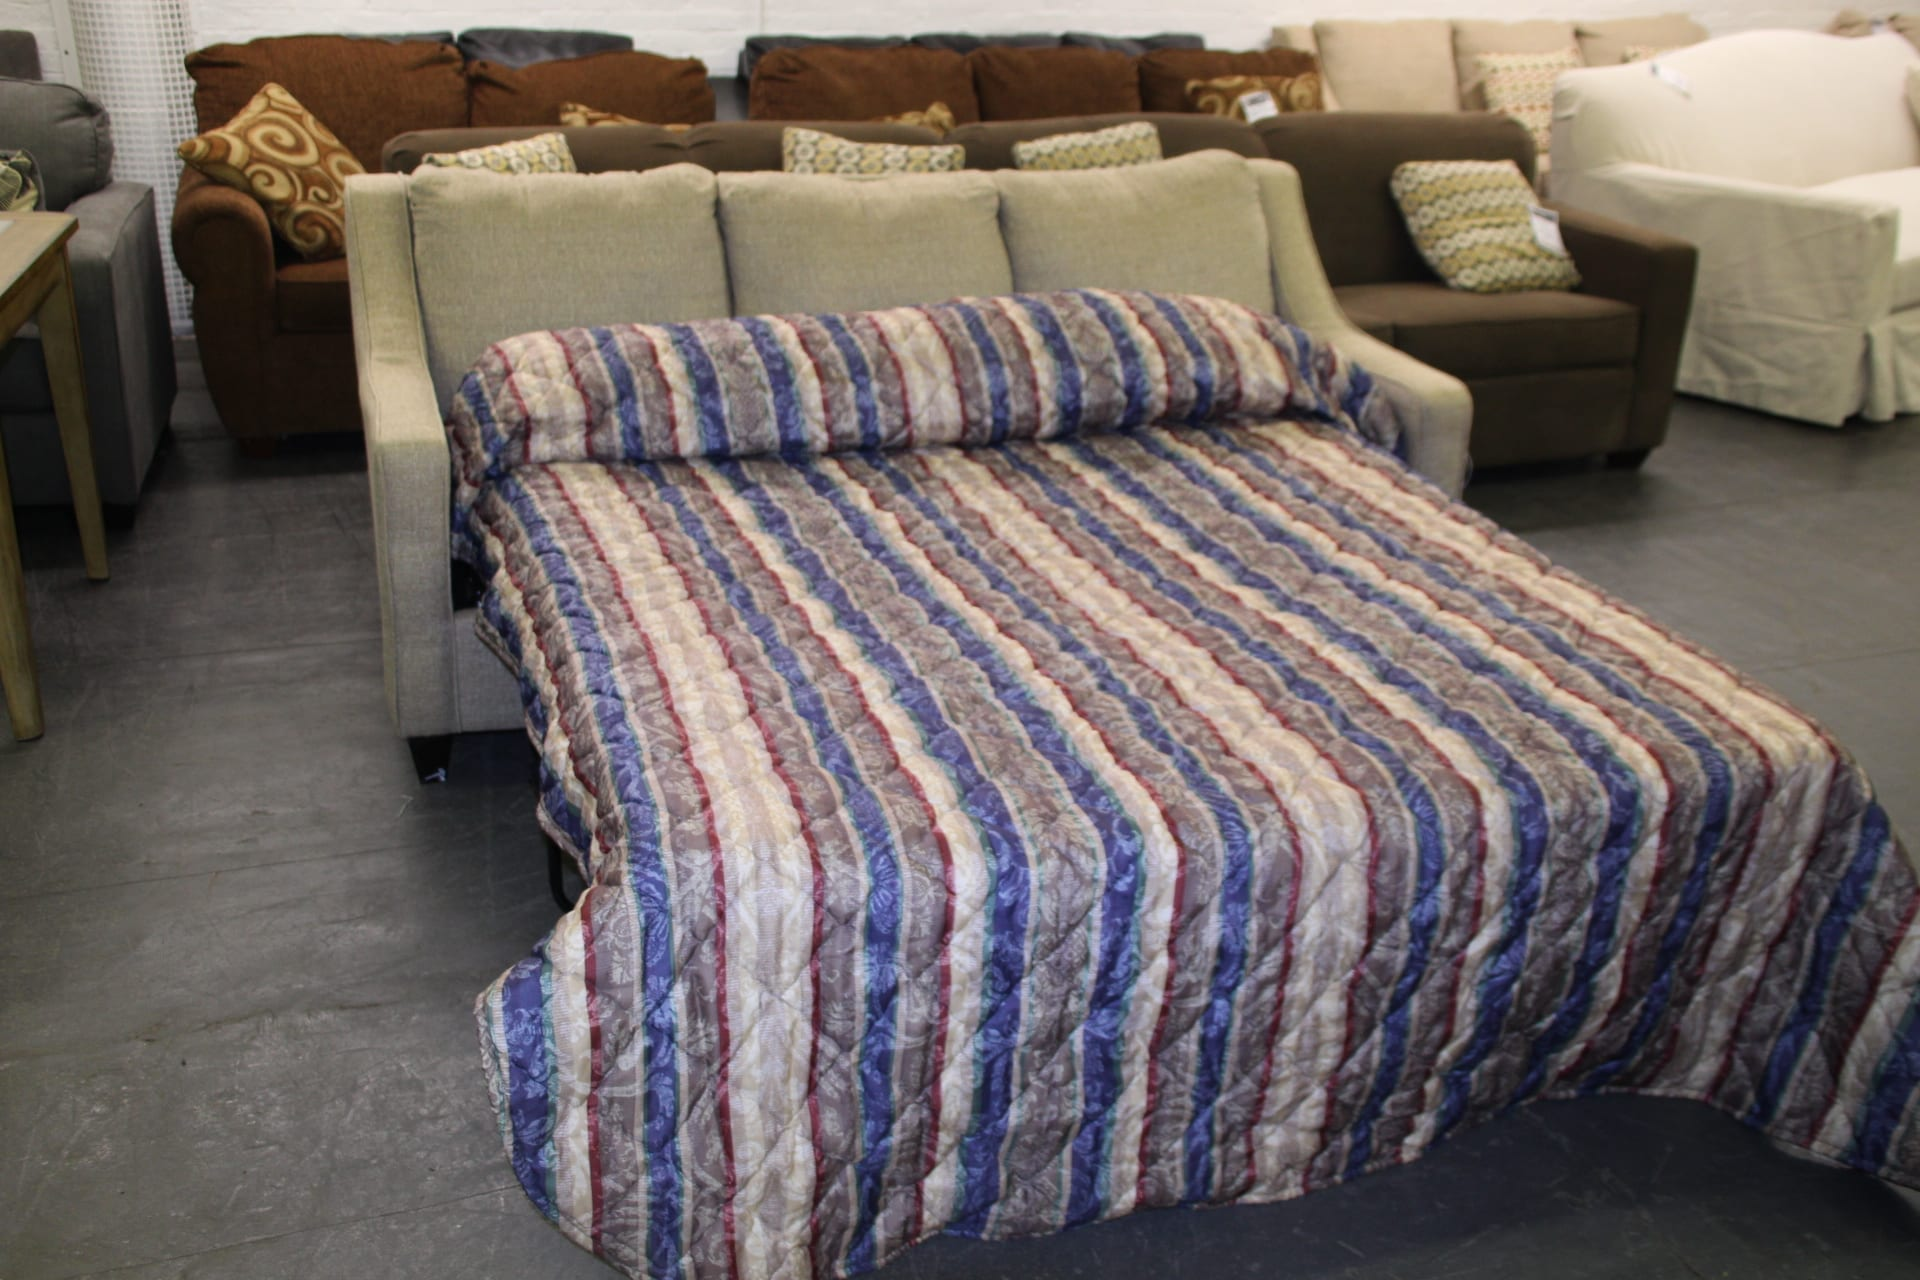 Queen Sofa bed upgrade available at Pittsburgh Furniture Leasing